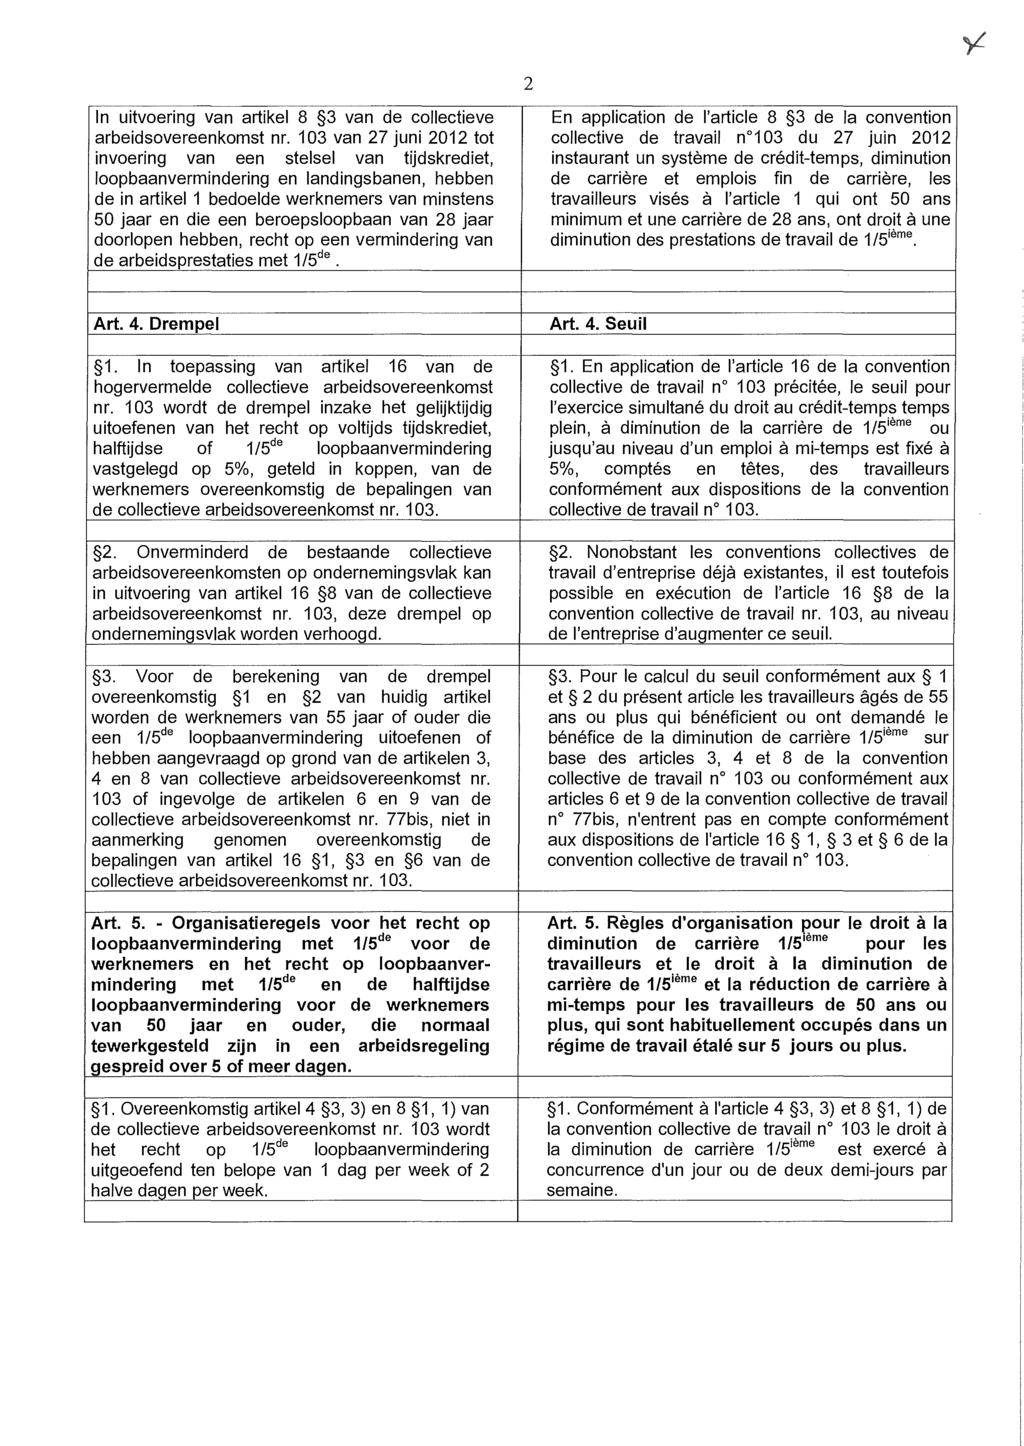 2 In uitvoering van artikel 8 3 van de collectieve En application de l'article 8 3 de la convention arbeidsovereenkomst nr.